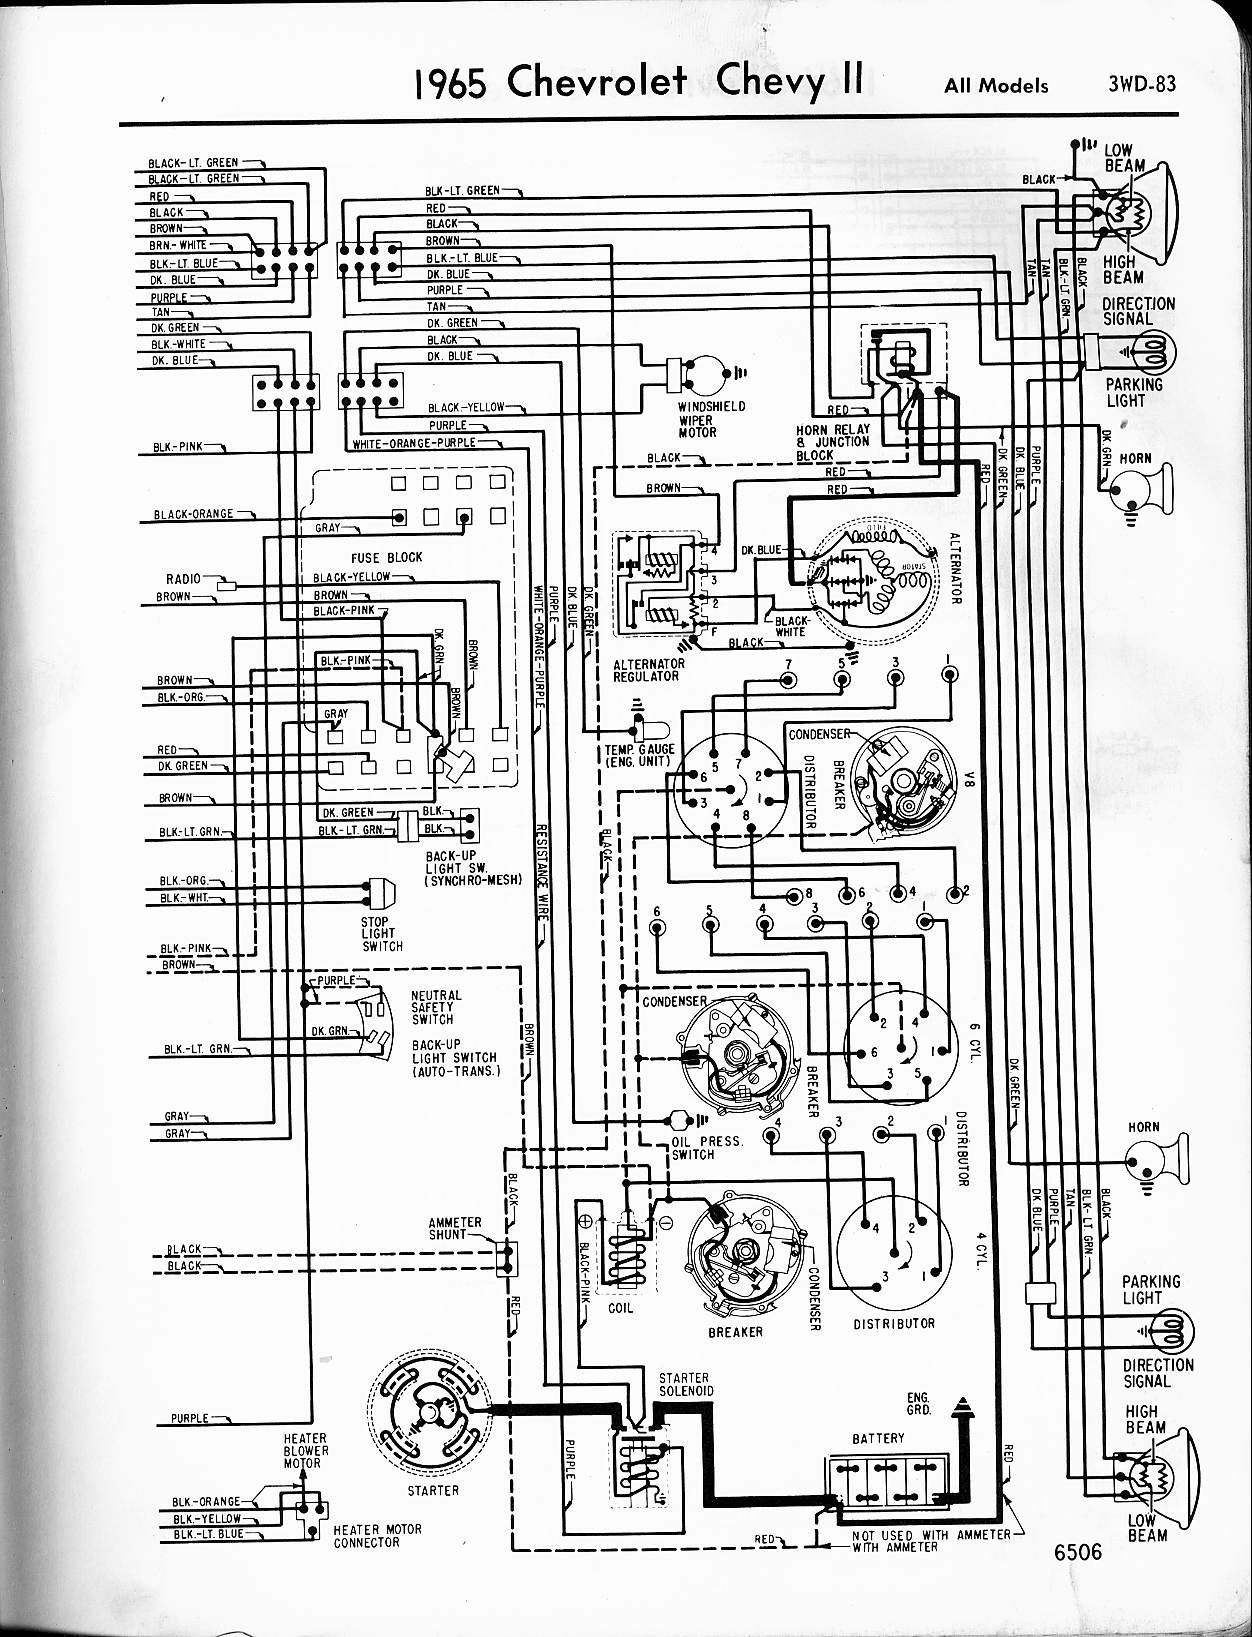 63 chevy truck wiring diagram visio database model template 65 autos post